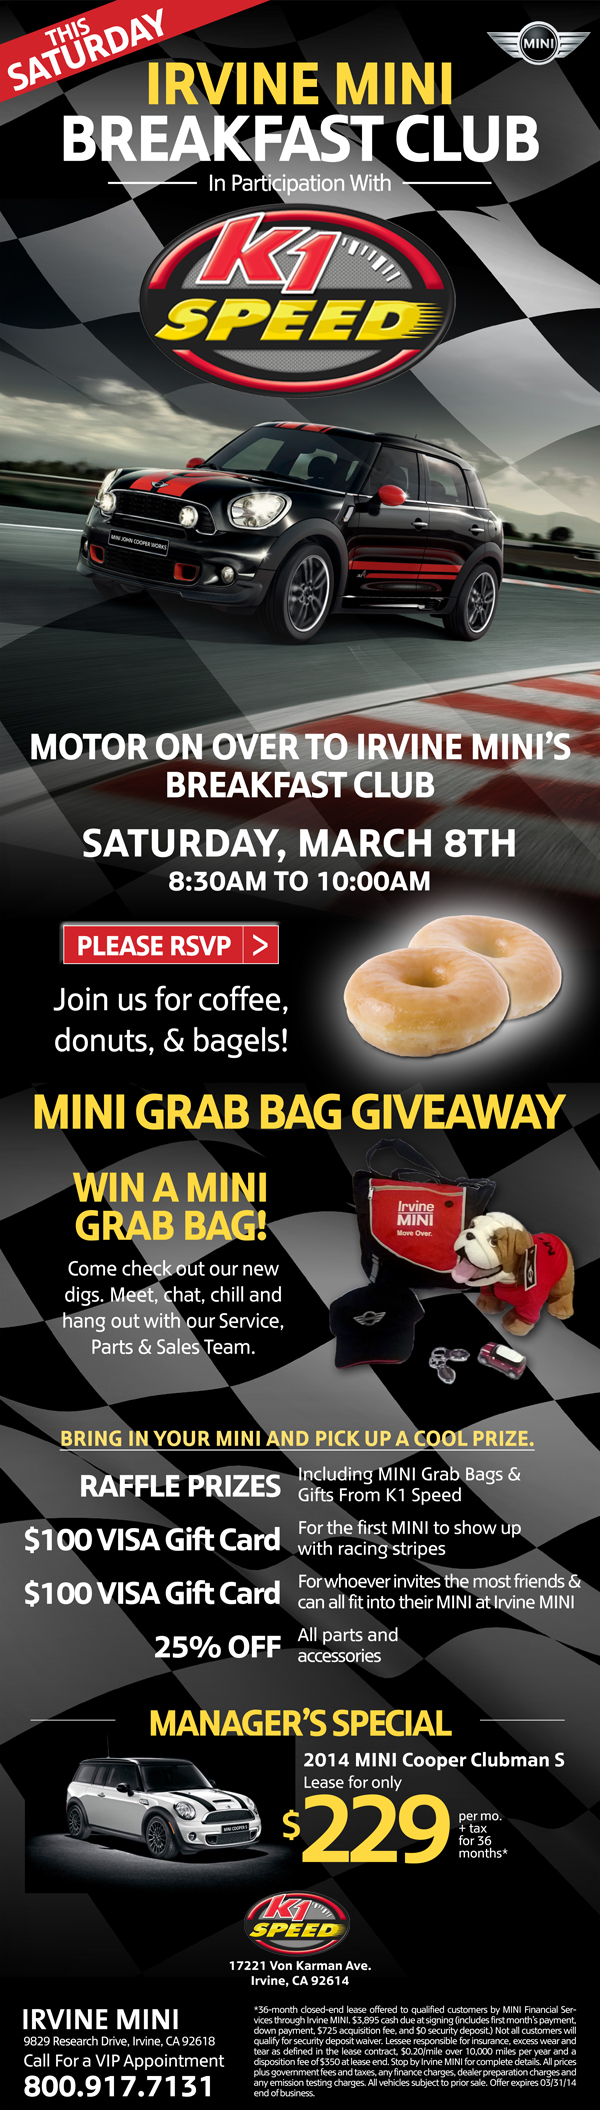 12826979875 86200f93af o Irvine MINI Breakfast Club this Saturday!